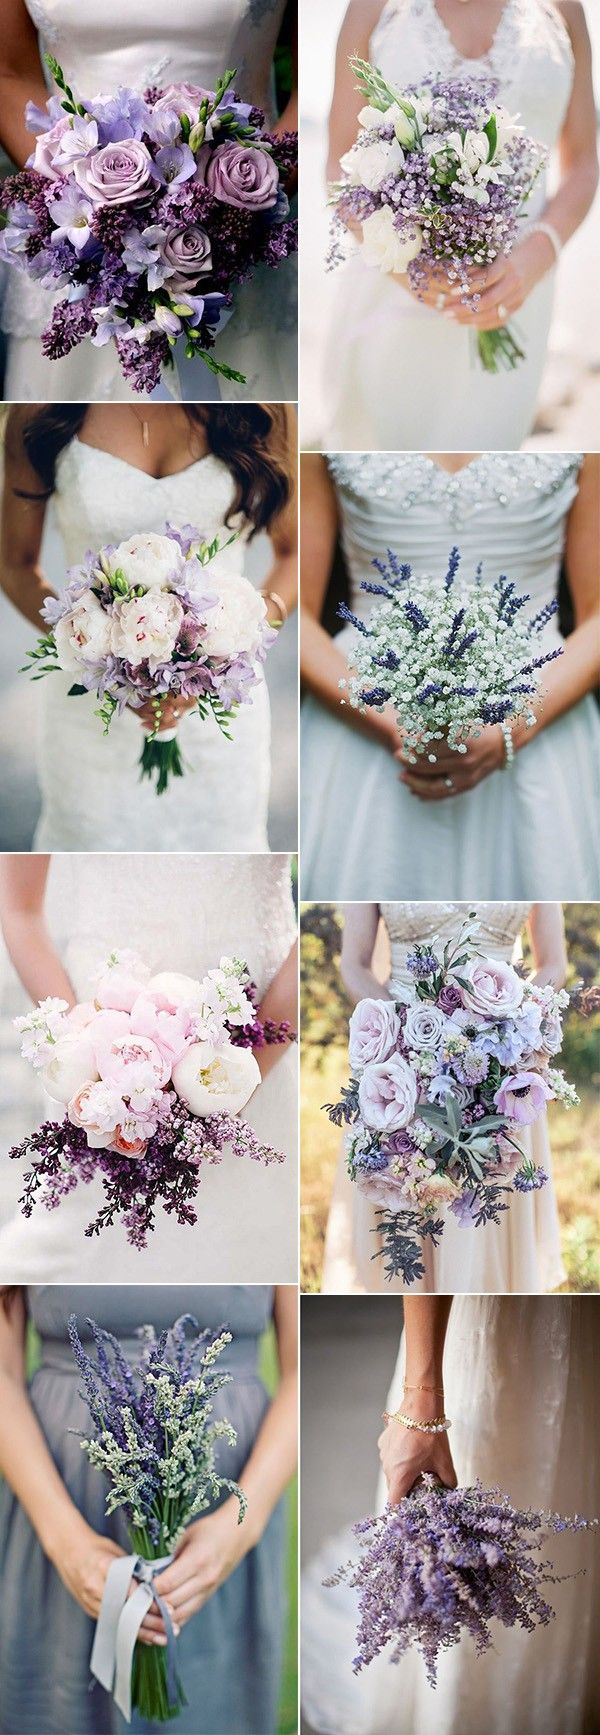 lavender themed wedding bouquet ideas